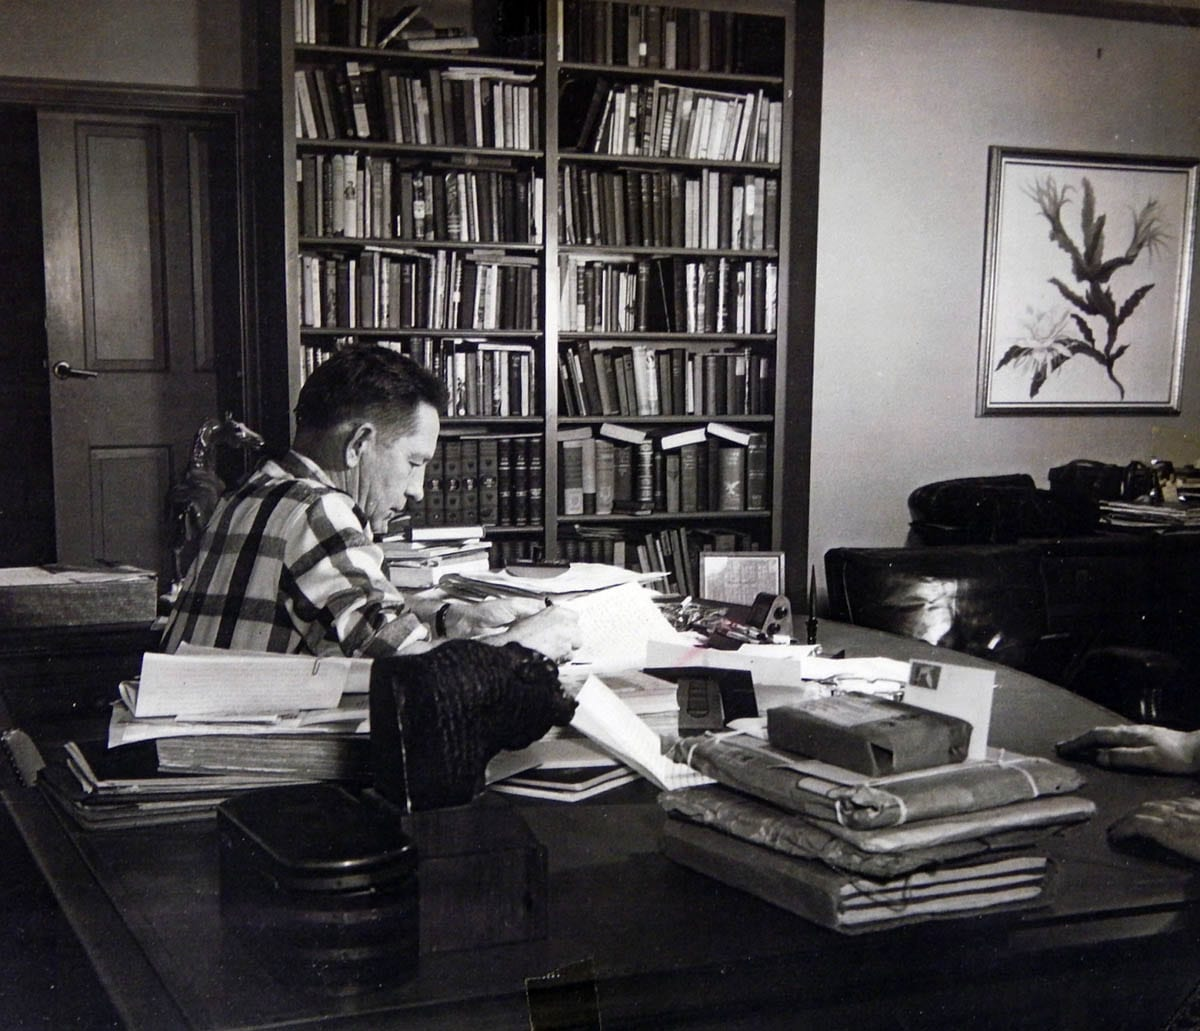 Bromfield writing at his desk